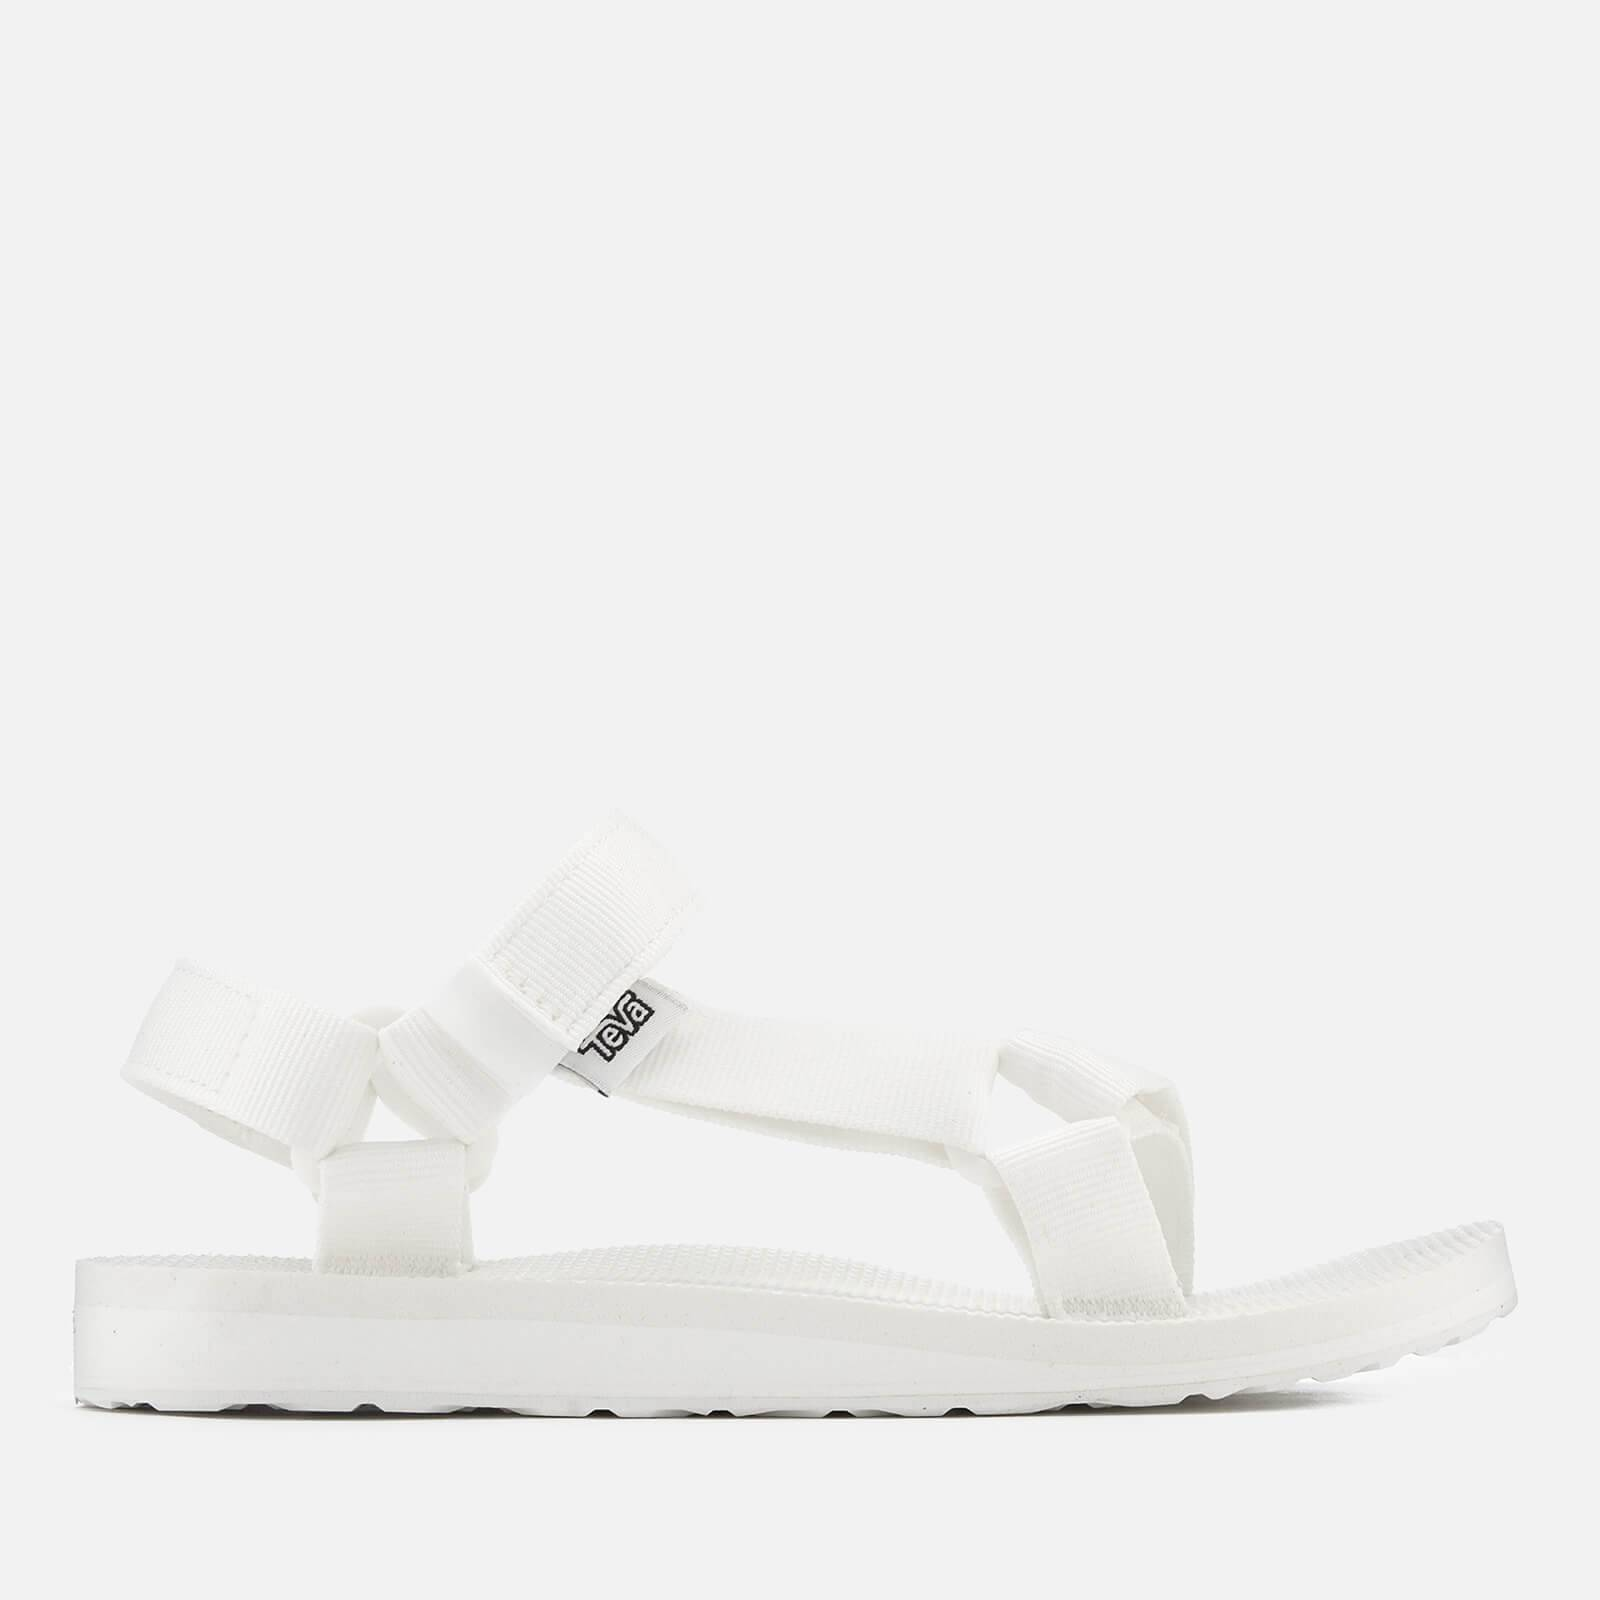 Teva Women's Original Universal Sport Sandals - Bright White - UK 4